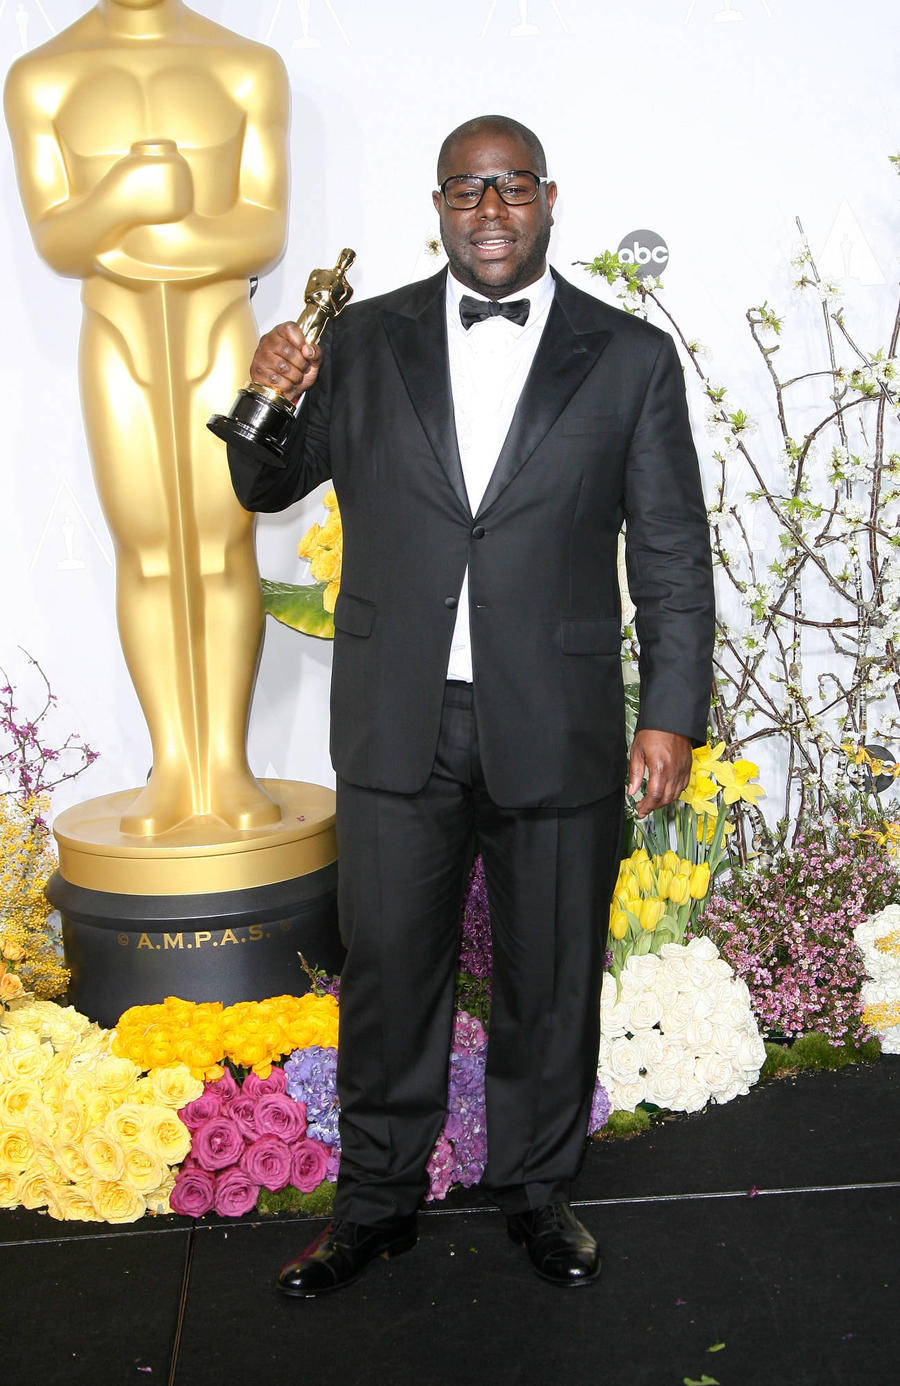 Steve Mcqueen To Make History With Bfi Fellowship Award